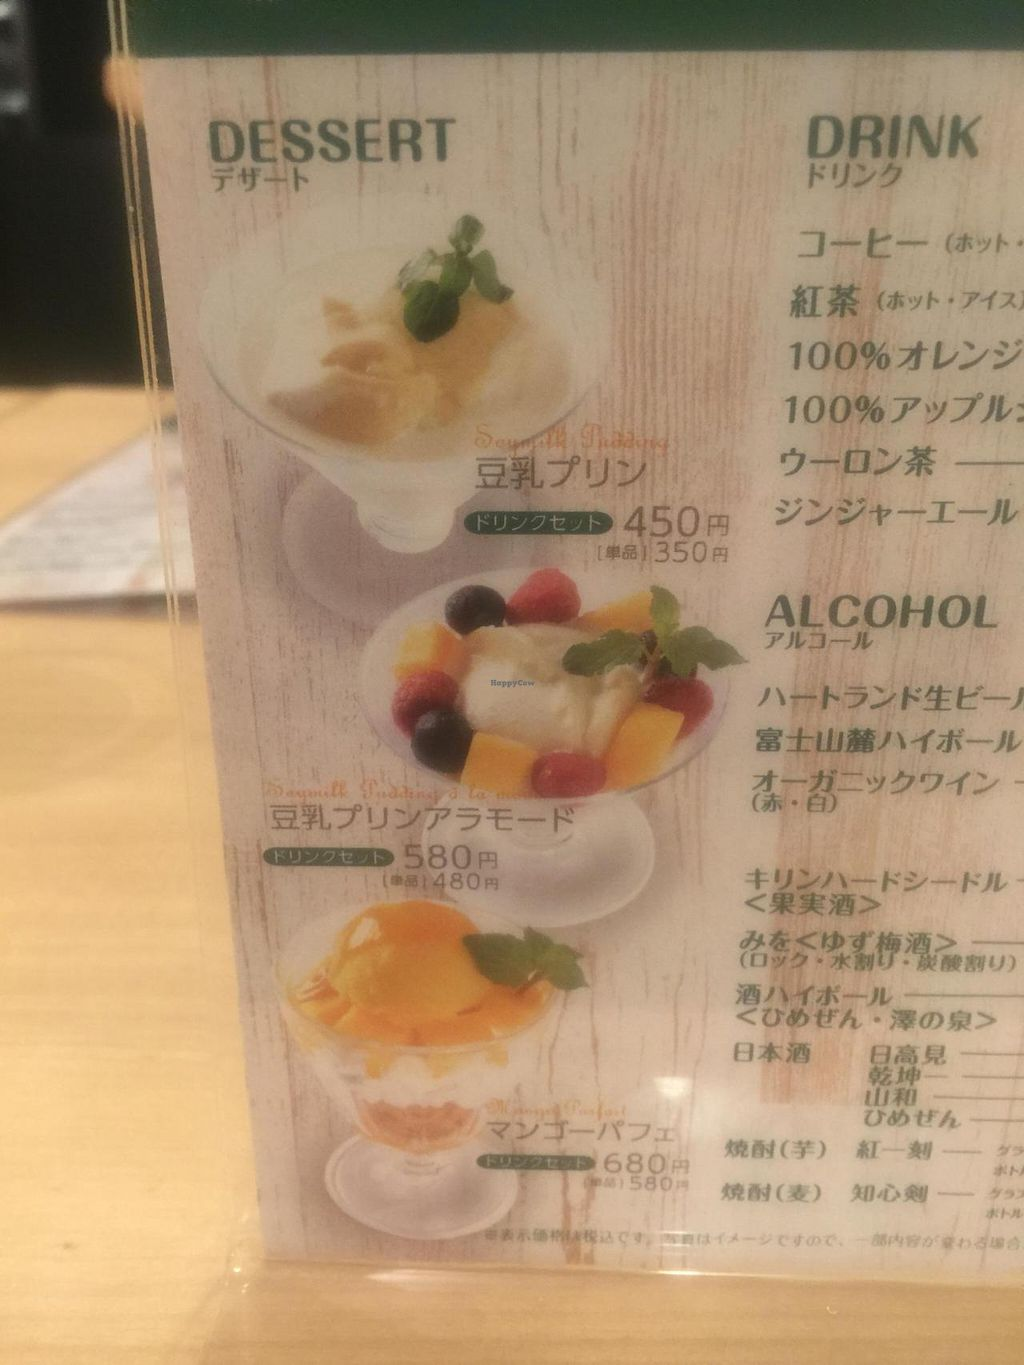 """Photo of T's Tan Tan  by <a href=""""/members/profile/Tiggy"""">Tiggy</a> <br/>Dessert menu - July 2015 <br/> July 2, 2015  - <a href='/contact/abuse/image/57492/107935'>Report</a>"""